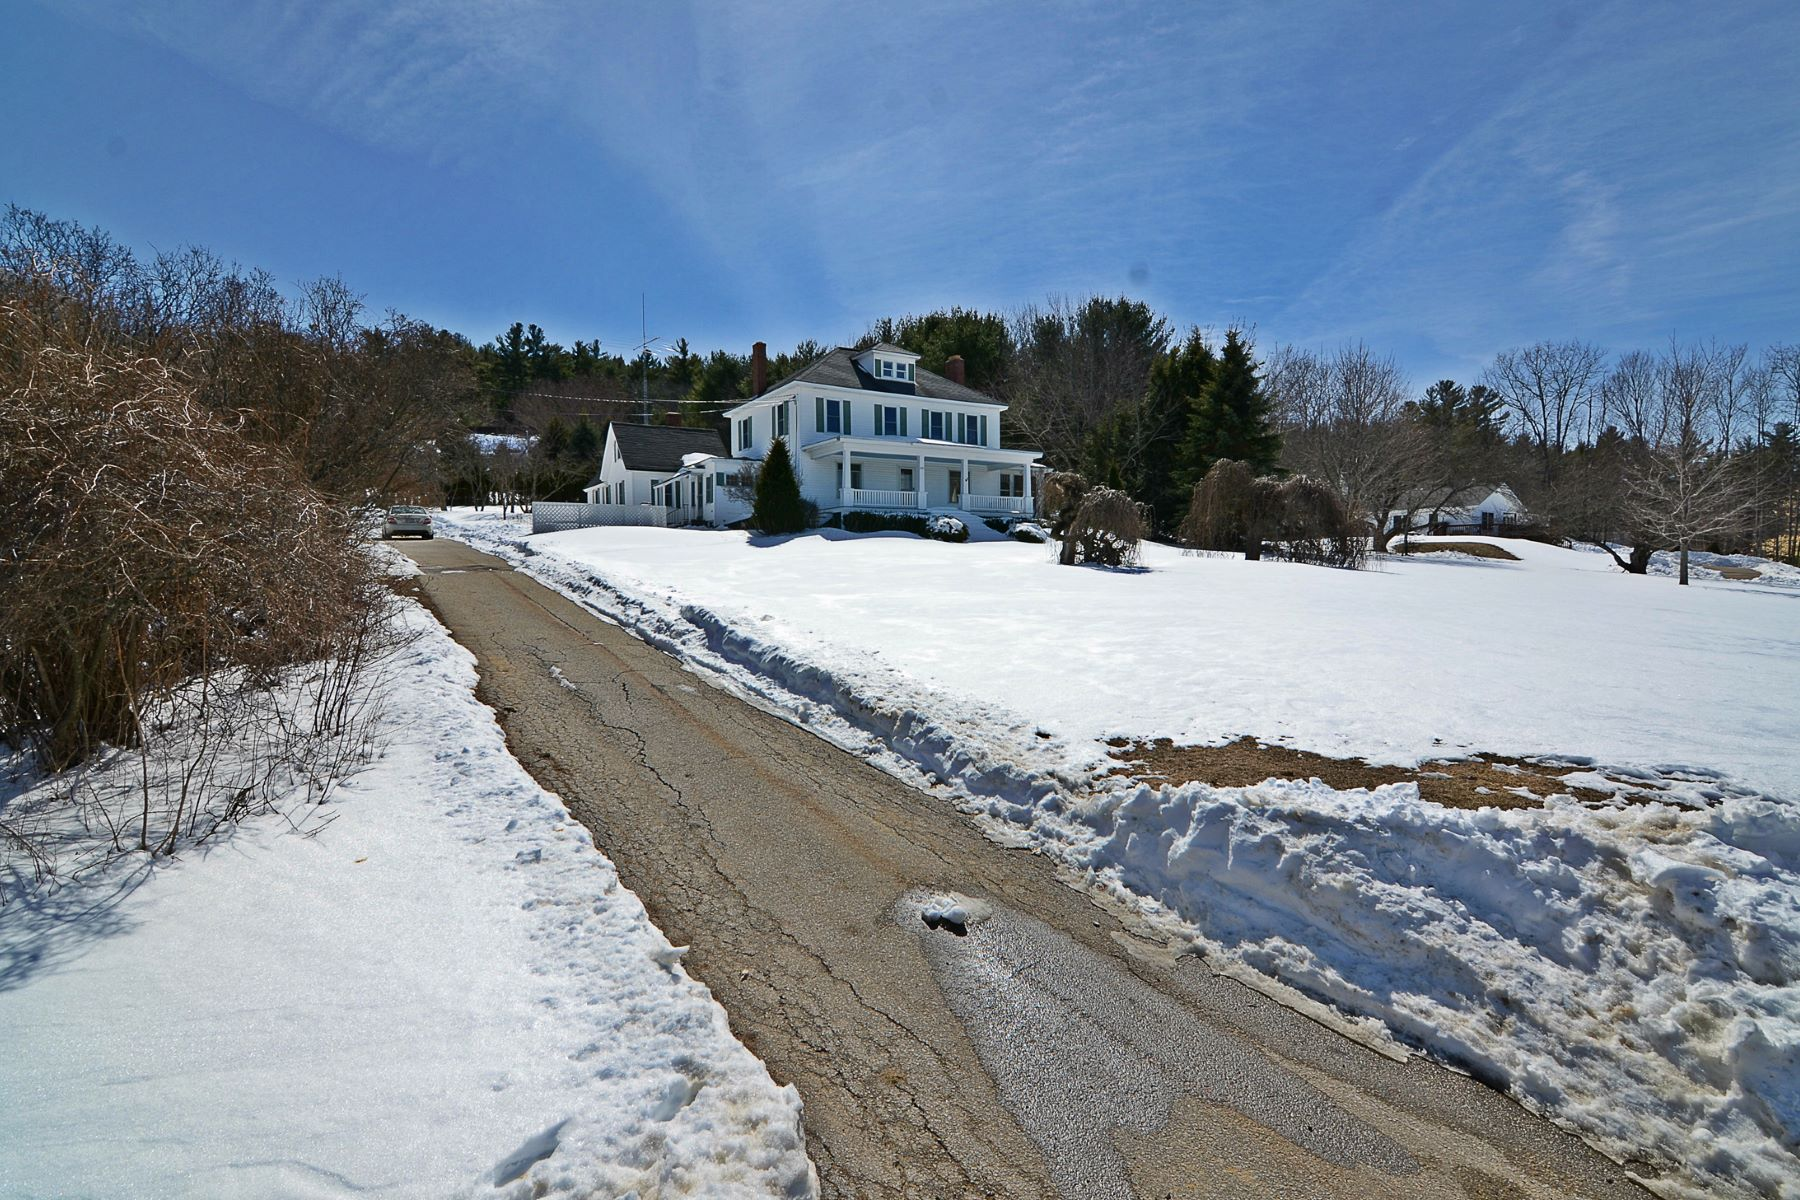 Single Family Home for Sale at 289 Cherry Valley Road, Gilford 289 Cherry Valley Rd Gilford, New Hampshire, 03249 United States